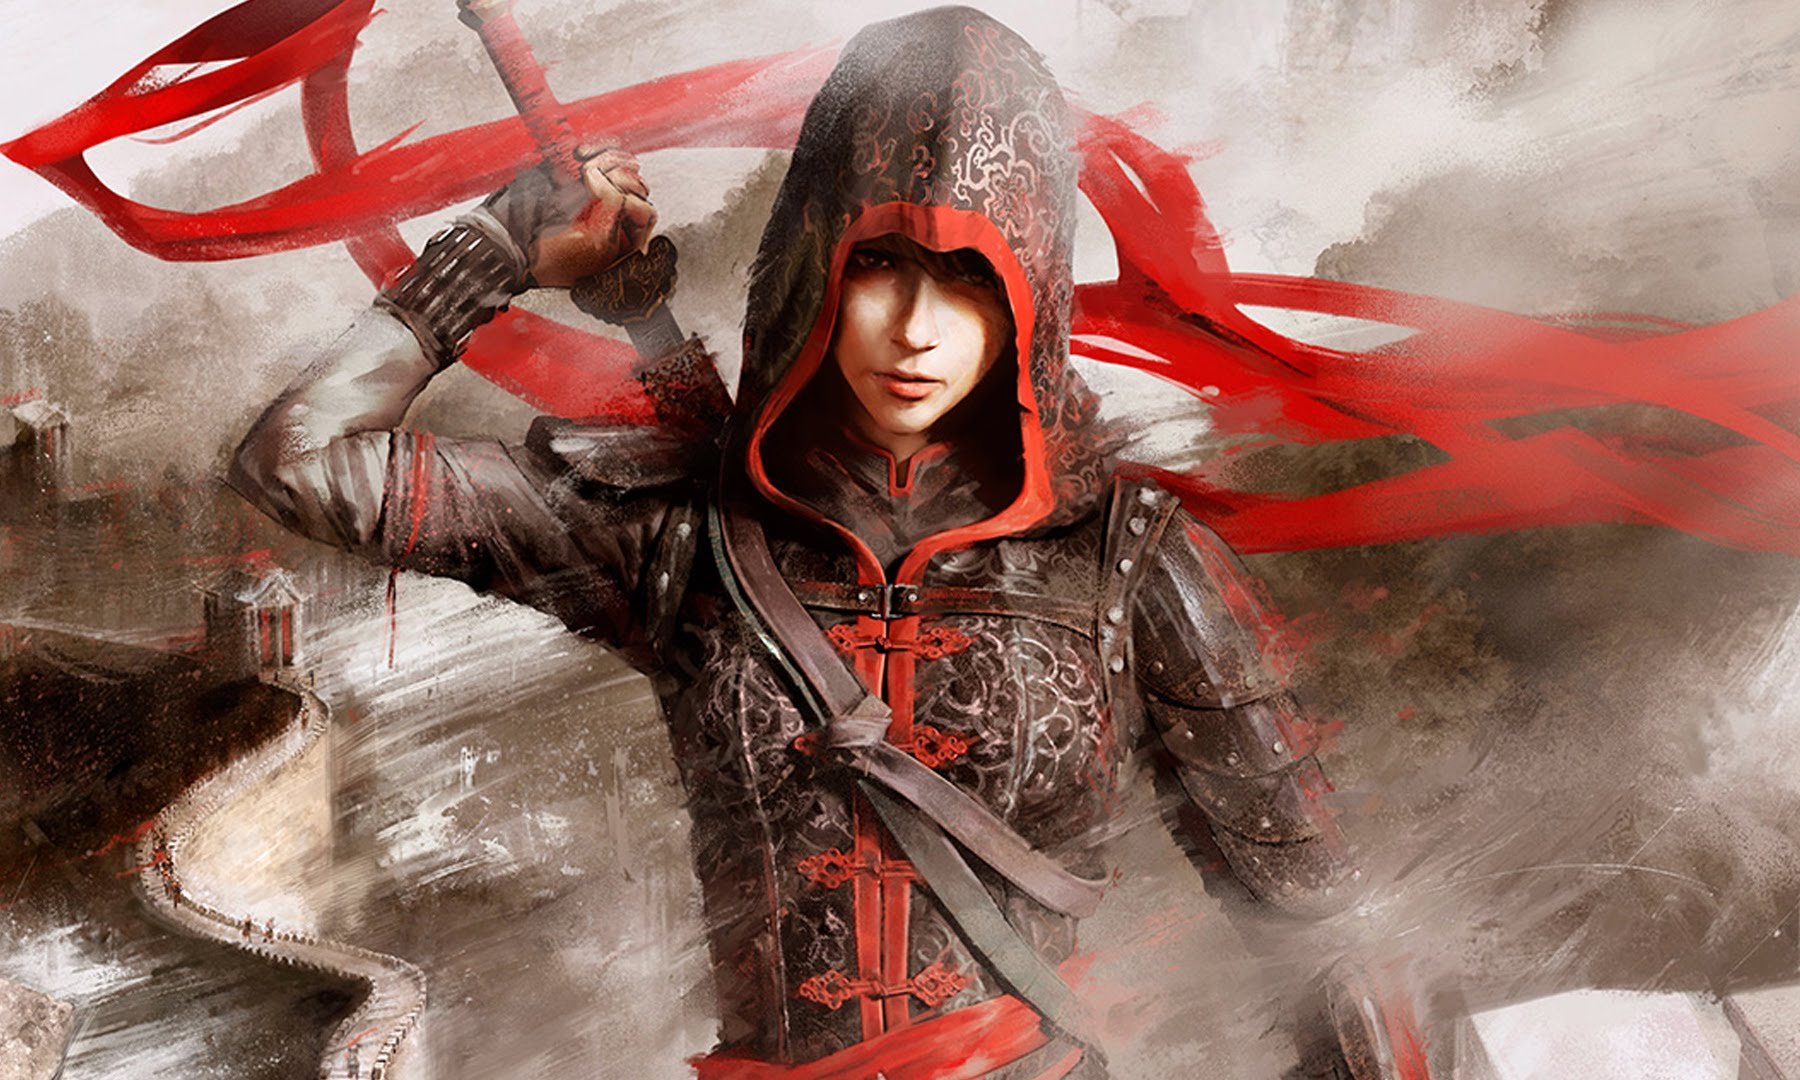 Assassin's Creed Chronicles: China Official Launch Trailer - 2.5 Dimensions of Assassin-ing